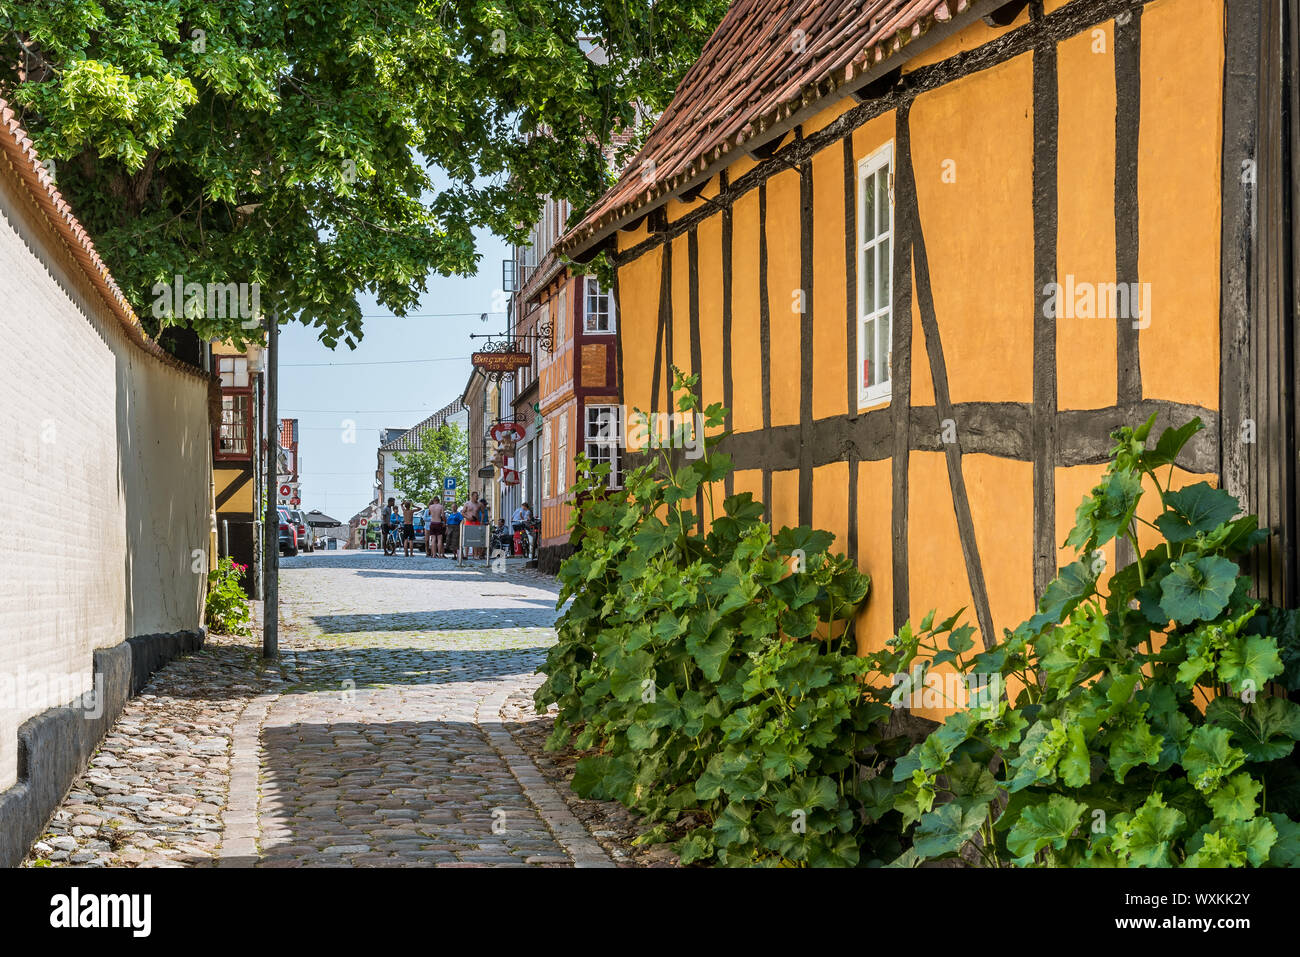 a yellow idyllic half-timbered house with green hollyhocks, at a narrow lane in the historic center of Faaborg, Denmark, July 12, 2019 Stock Photo